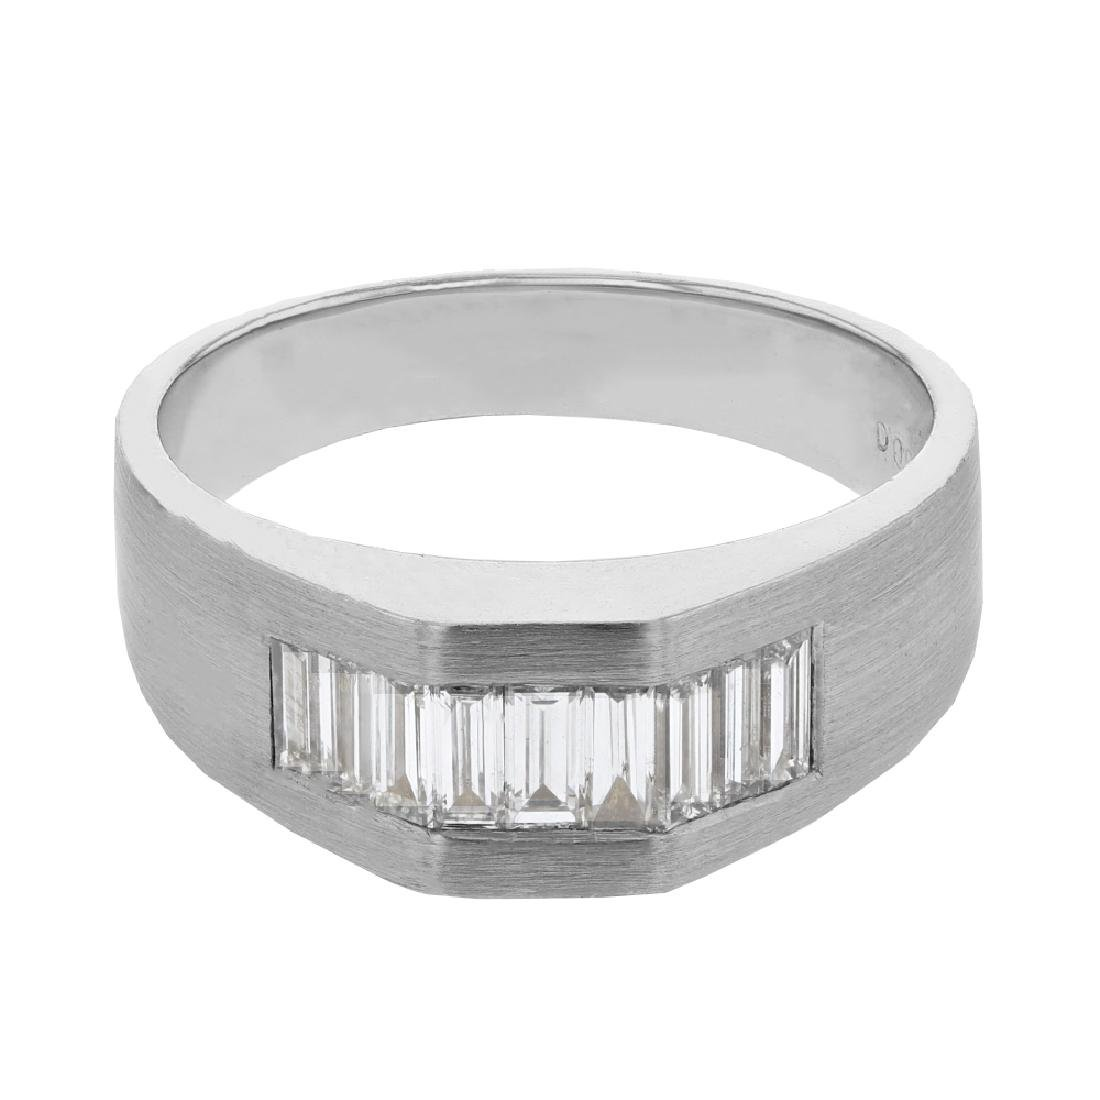 1.03 CTW Diamond Wedding Band Ring 14K White Gold